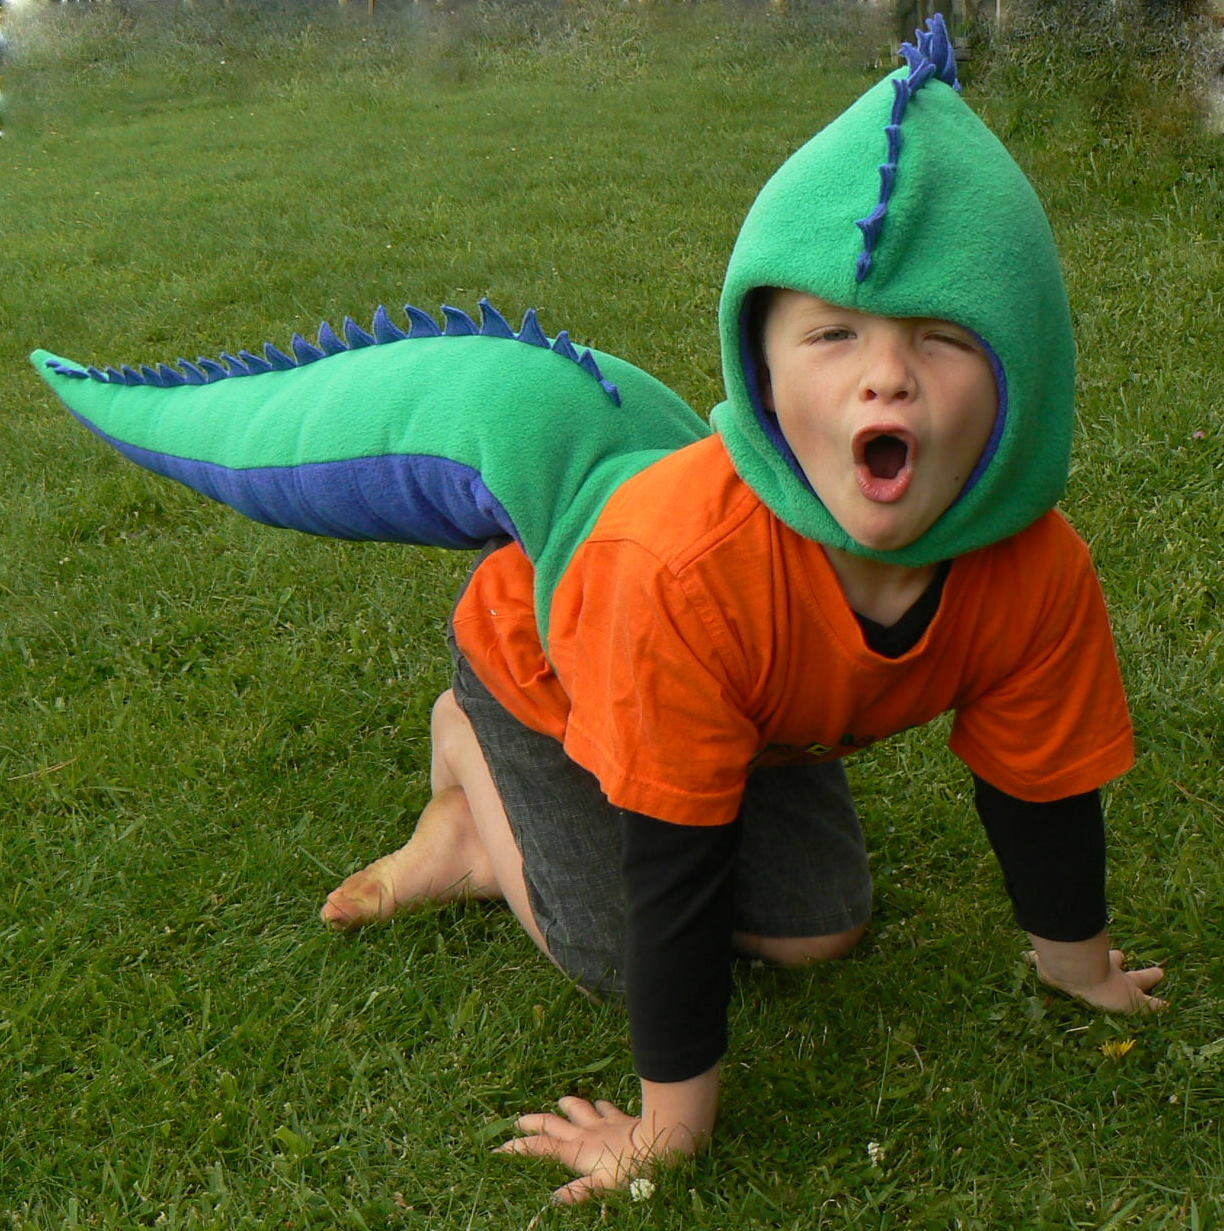 Dinosaur Costume Pattern Browse Patterns  sc 1 st  Meningrey & Dinosaur Costume Patterns - Meningrey